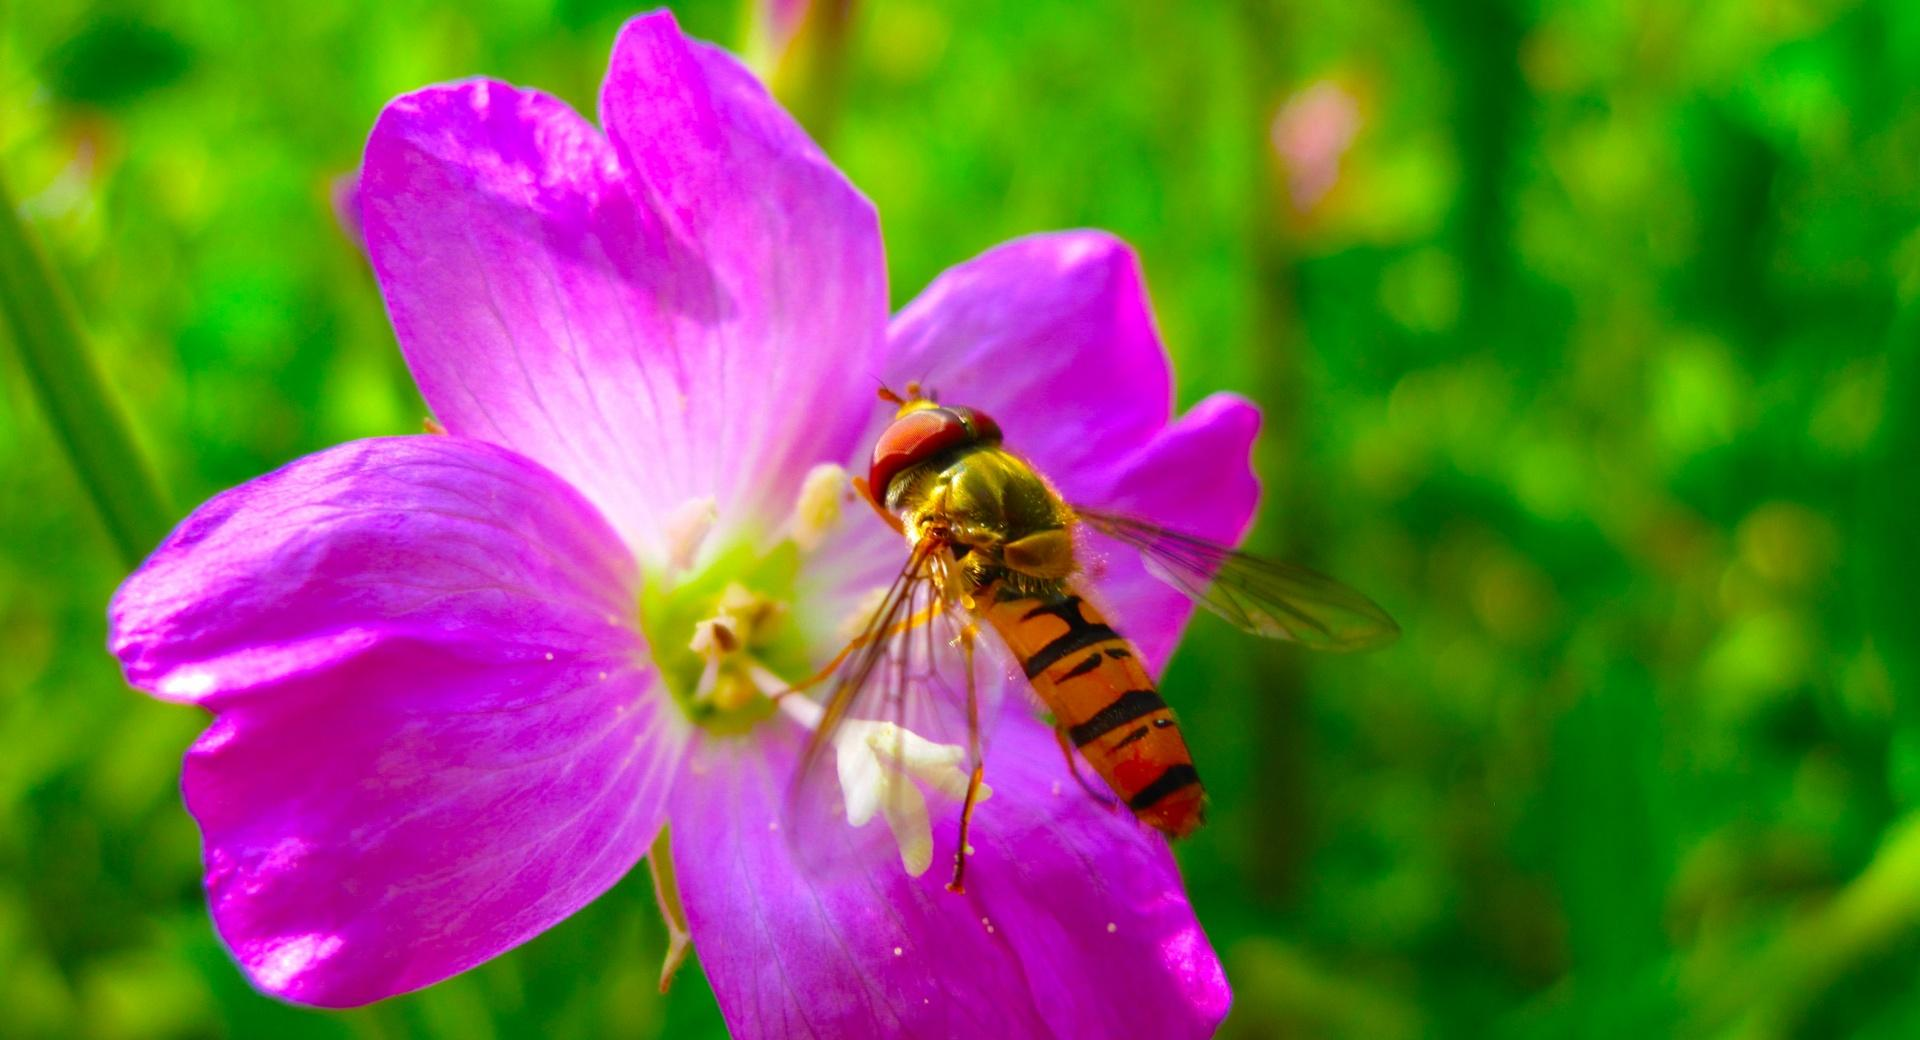 Hoverfly On Flower wallpapers HD quality